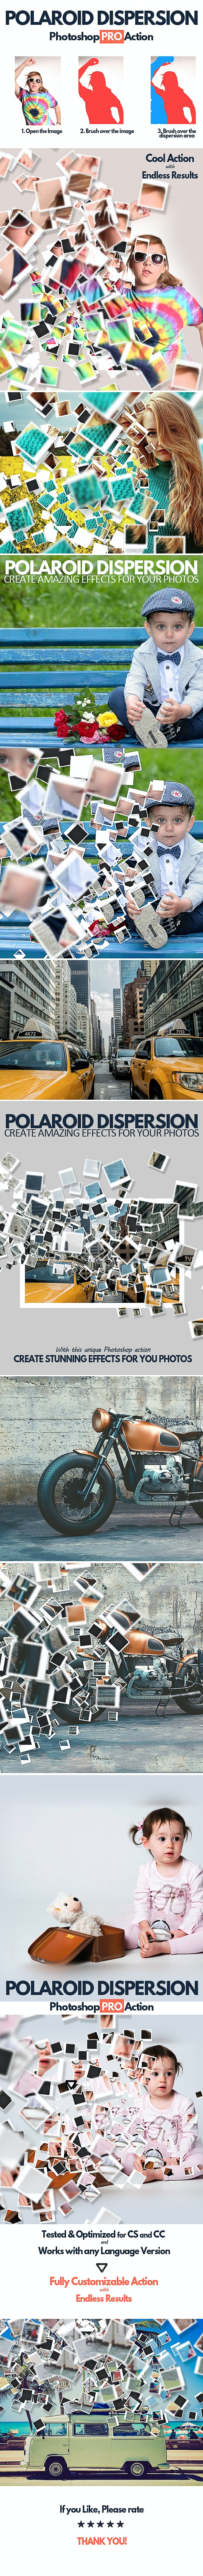 Polaroid Dispersion Photoshop Action - Photo Effects Actions